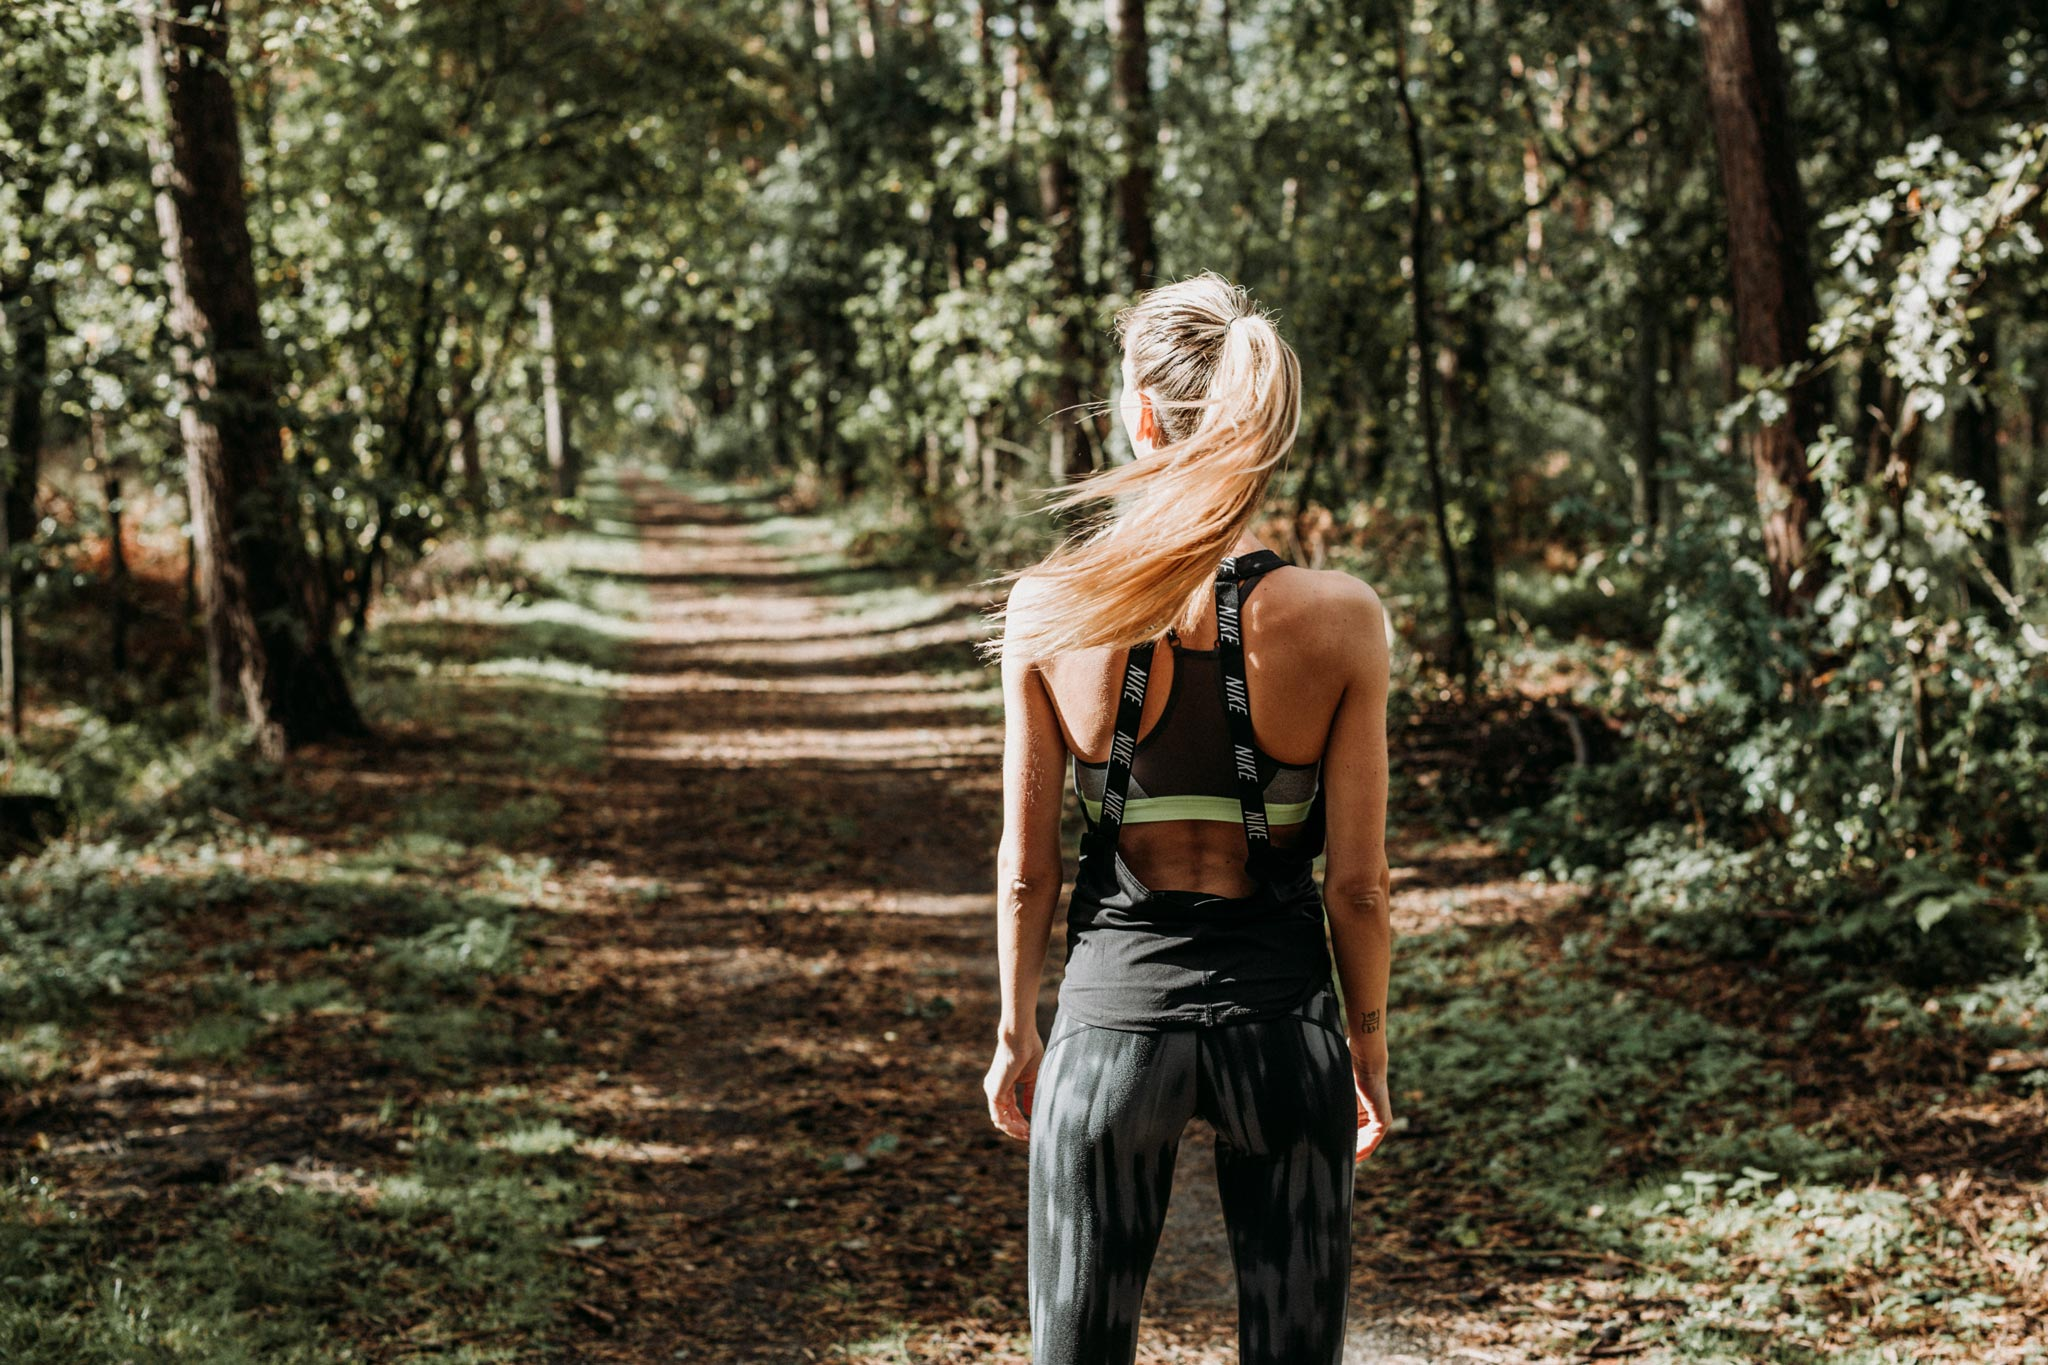 Female athlete running on an outdoor trail in the woods wearing a Nike outfit